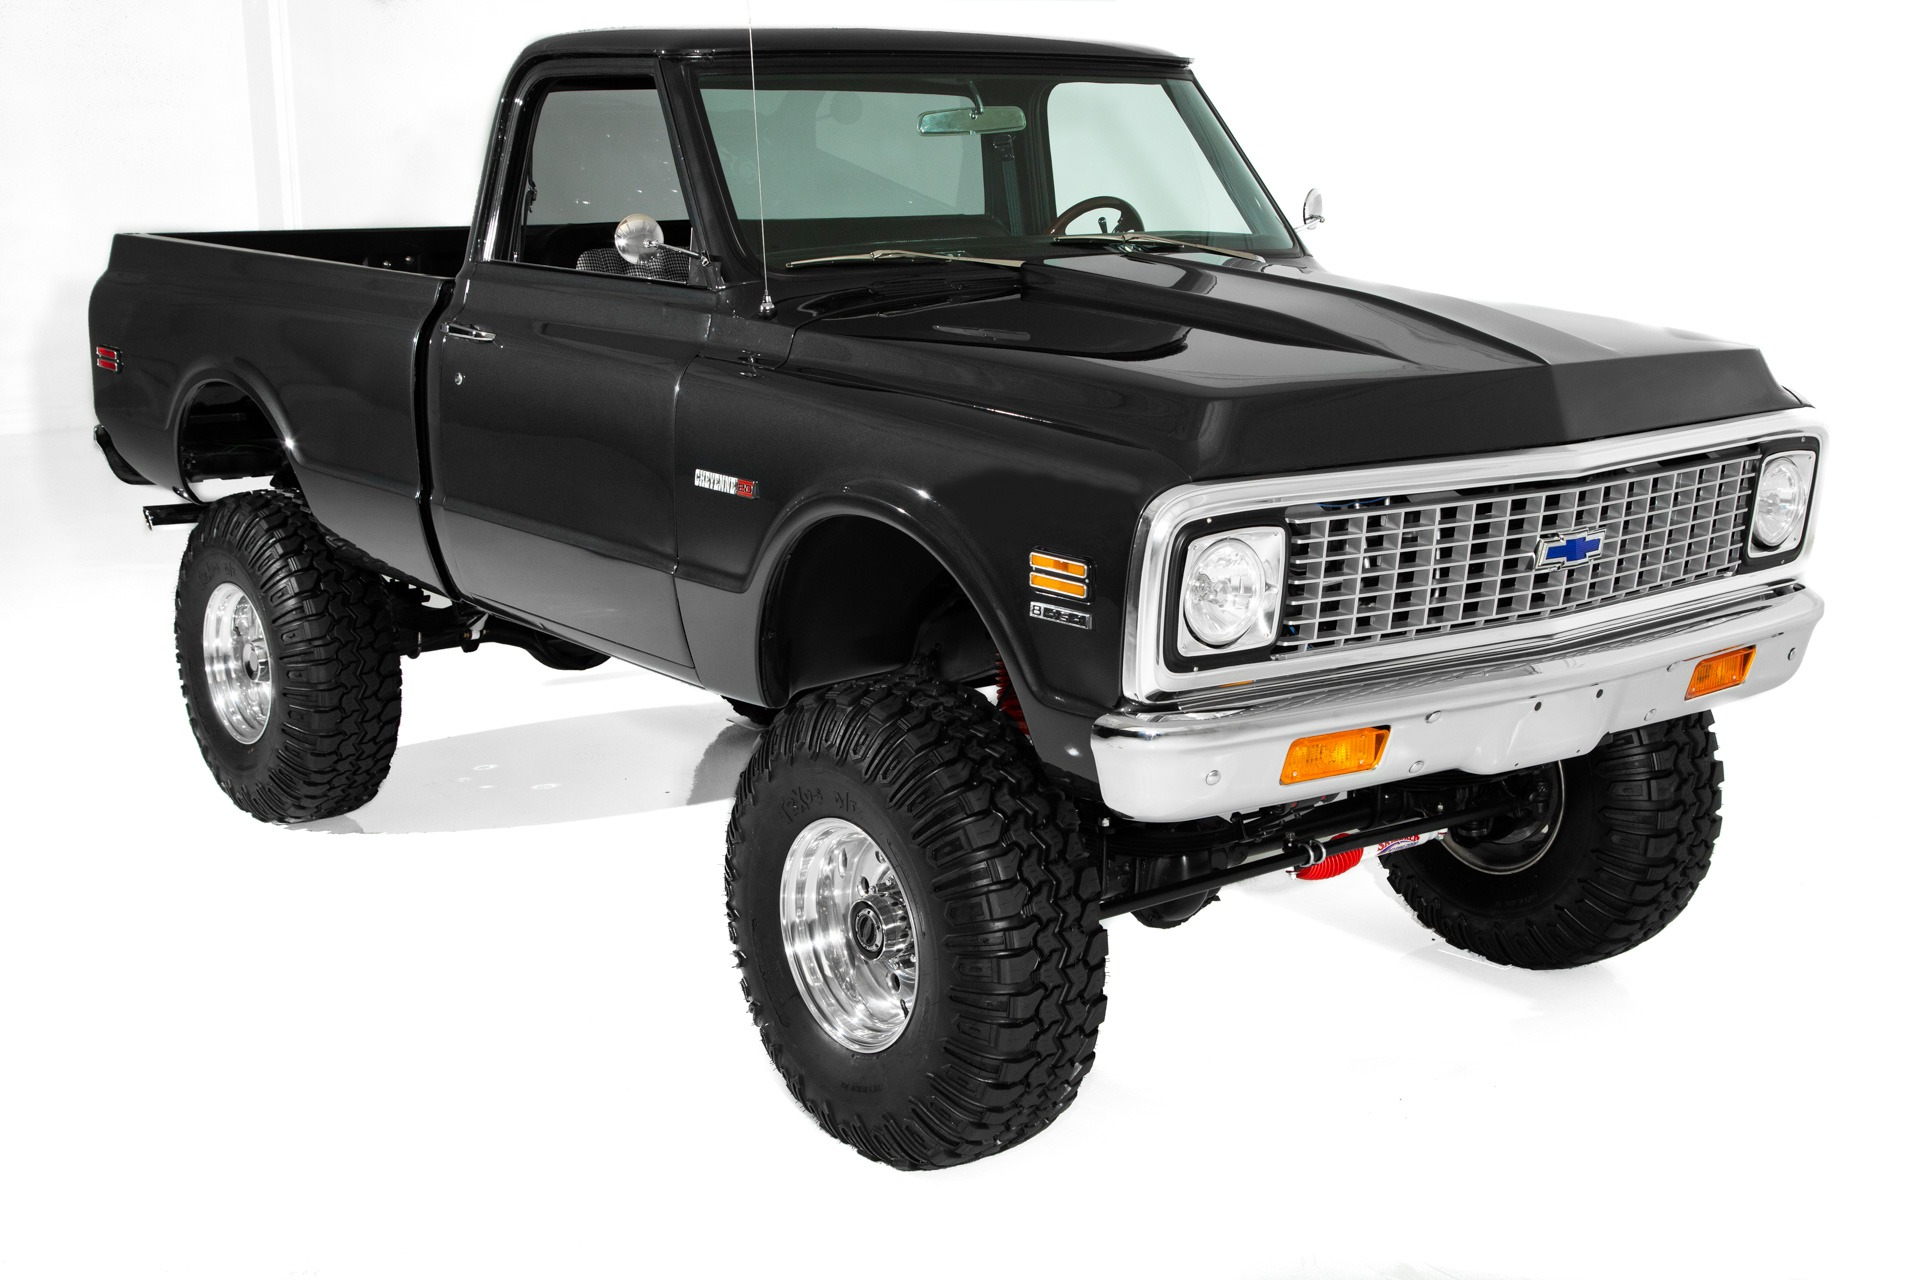 For Sale Used 1972 Chevrolet Pickup K20 4WD 454 Show Truck | American Dream Machines Des Moines IA 50309